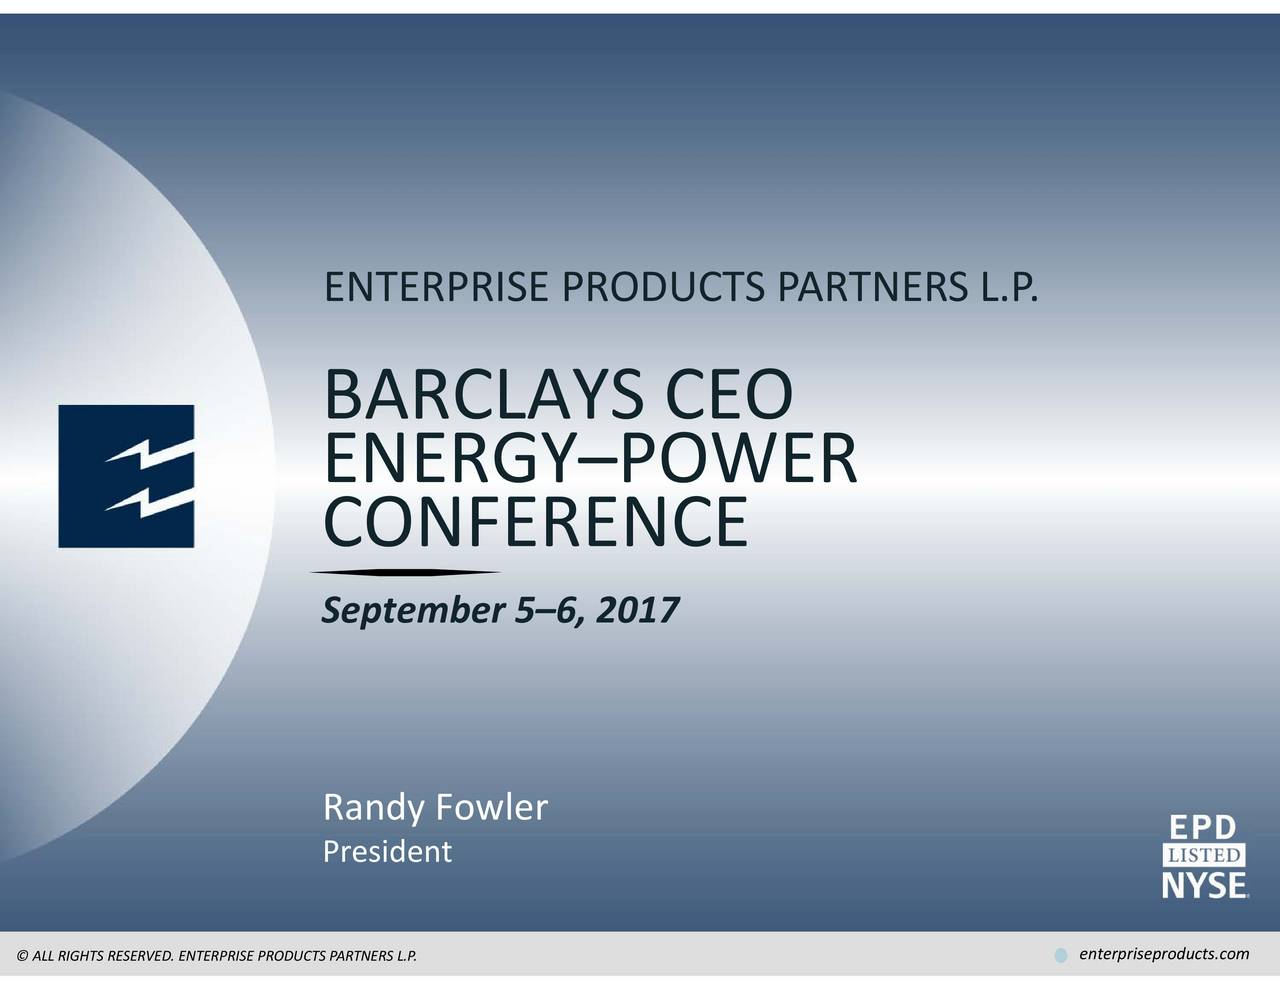 Epd Stock Quote Enterprise Products Partners Epd Presents At Barclays Ceo Energy